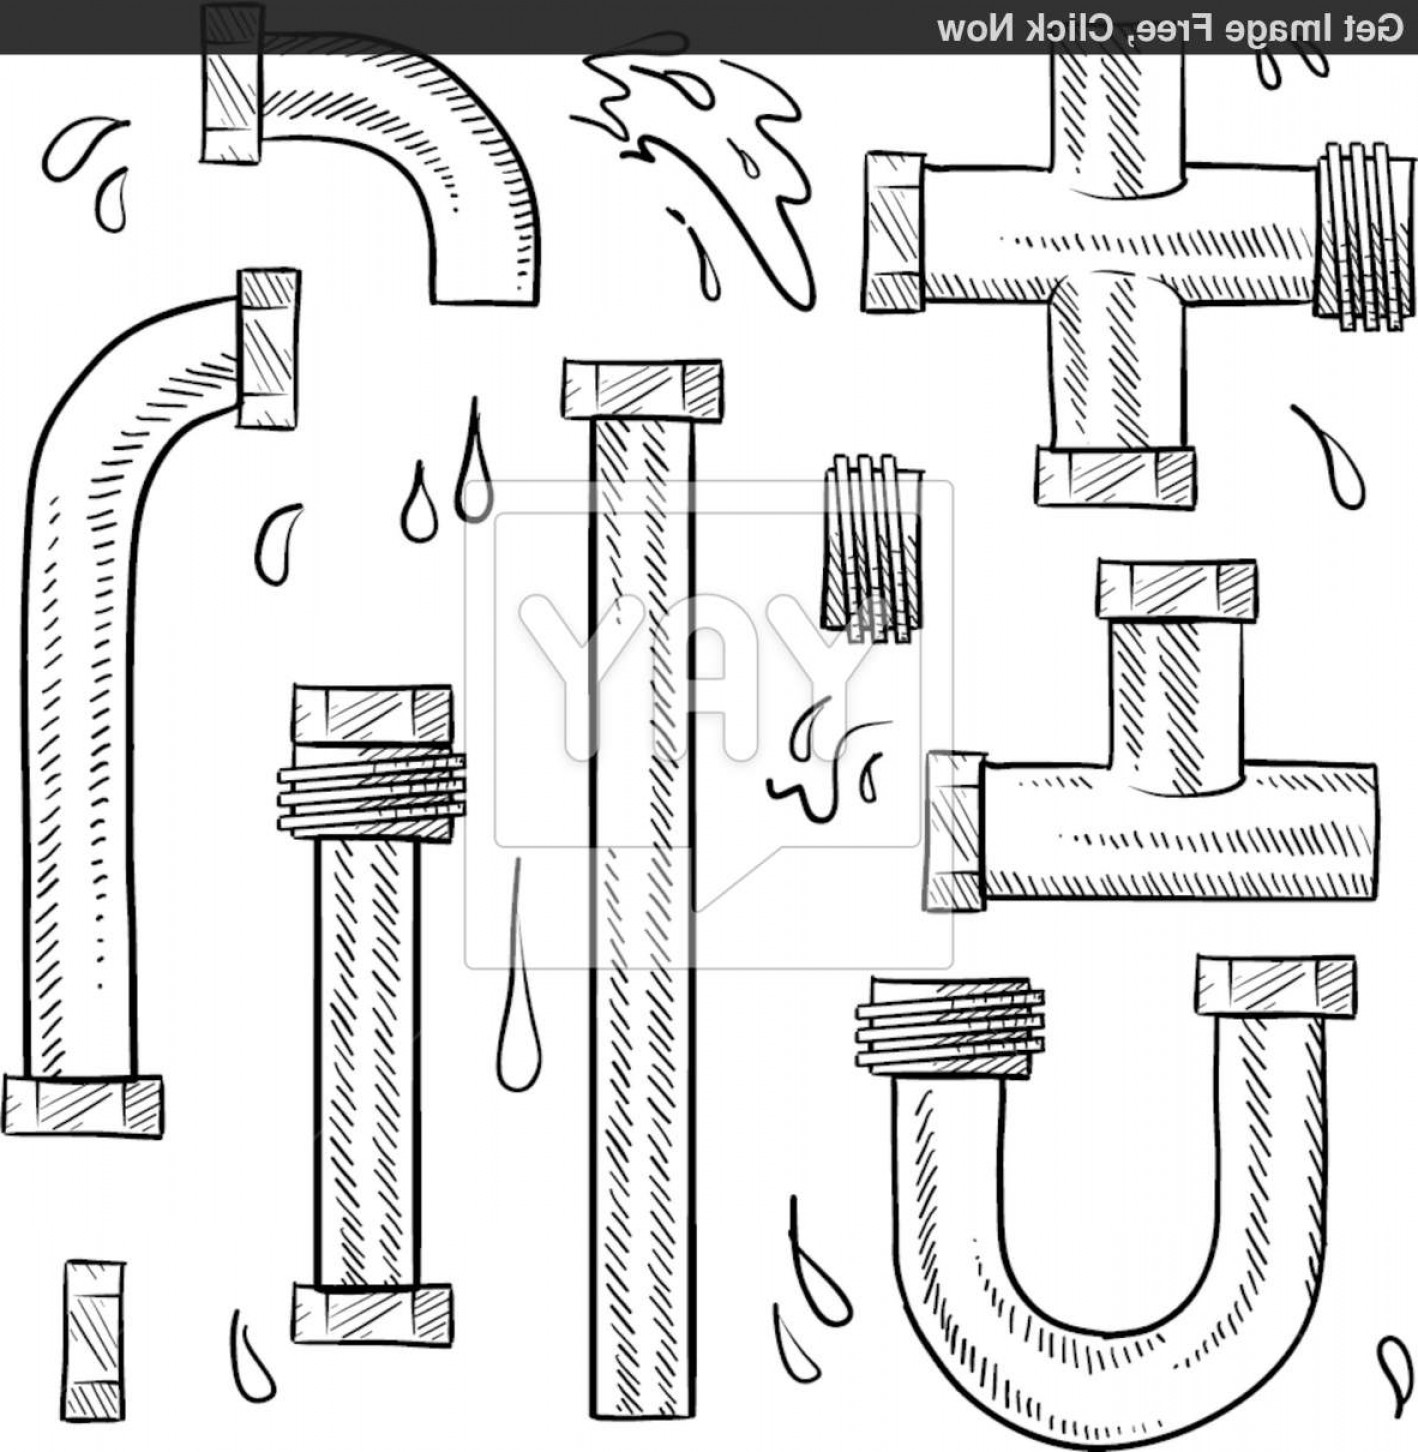 Free plumbing pipes clipart clip art black and white library Free Collectionpdwn Plumbing Pipes Clipart Graphic | Vectory clip art black and white library